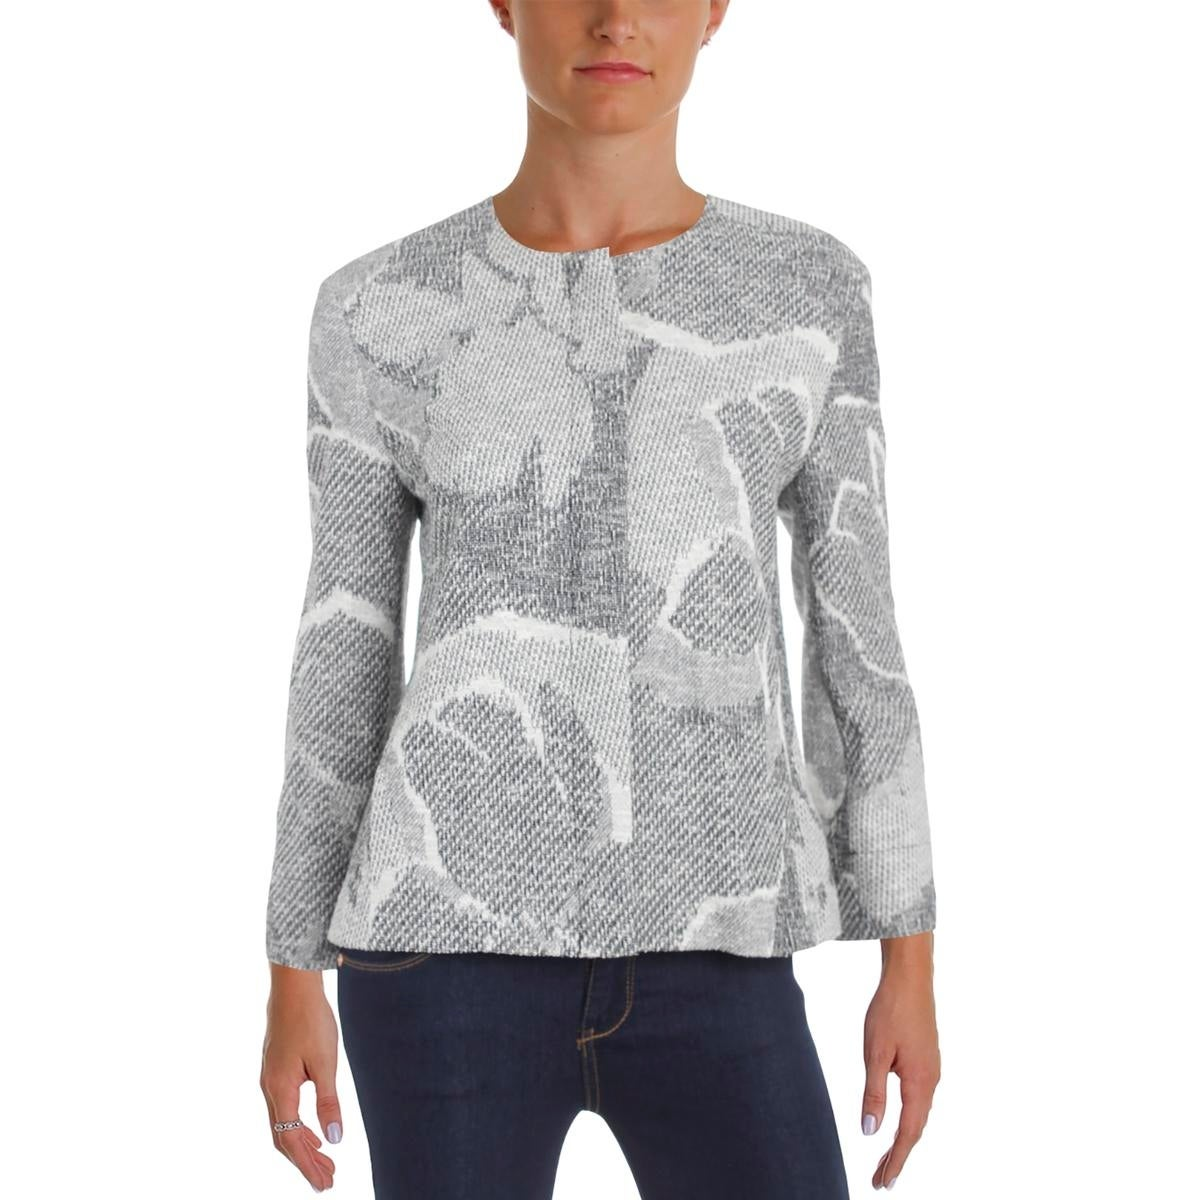 98709ec60fb Patterned T Shirts Womens - Cotswold Hire